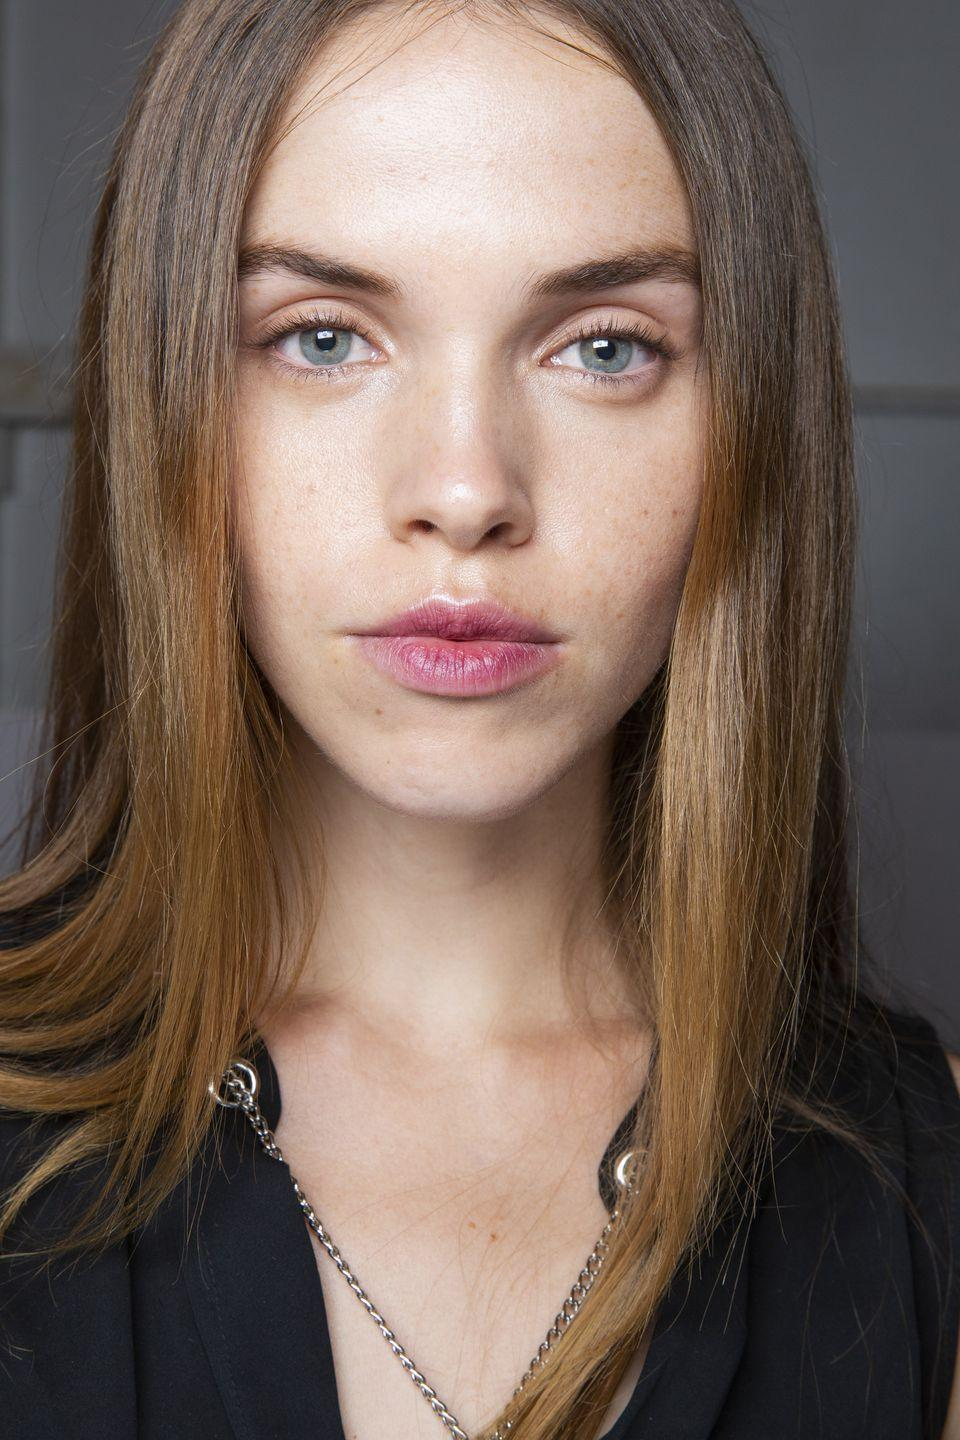 """<p>Makeup artist Grace Lee for Maybelline New York """"juxtaposed the ethereal white and yellow fabrics in the Edwardian-inspired collection with a flushed cheek or berry-stained lip,"""" the brand stated in a release after the show. """"The look is innocent but strong,"""" she said.</p><p><a rel=""""nofollow noopener"""" href=""""https://www.maybelline.com/lip-makeup/lipstick/superstay-matte-ink-city-edition-liquid-lipstick-makeup/composer"""" target=""""_blank"""" data-ylk=""""slk:SHOP"""" class=""""link rapid-noclick-resp"""">SHOP</a><br></p>"""